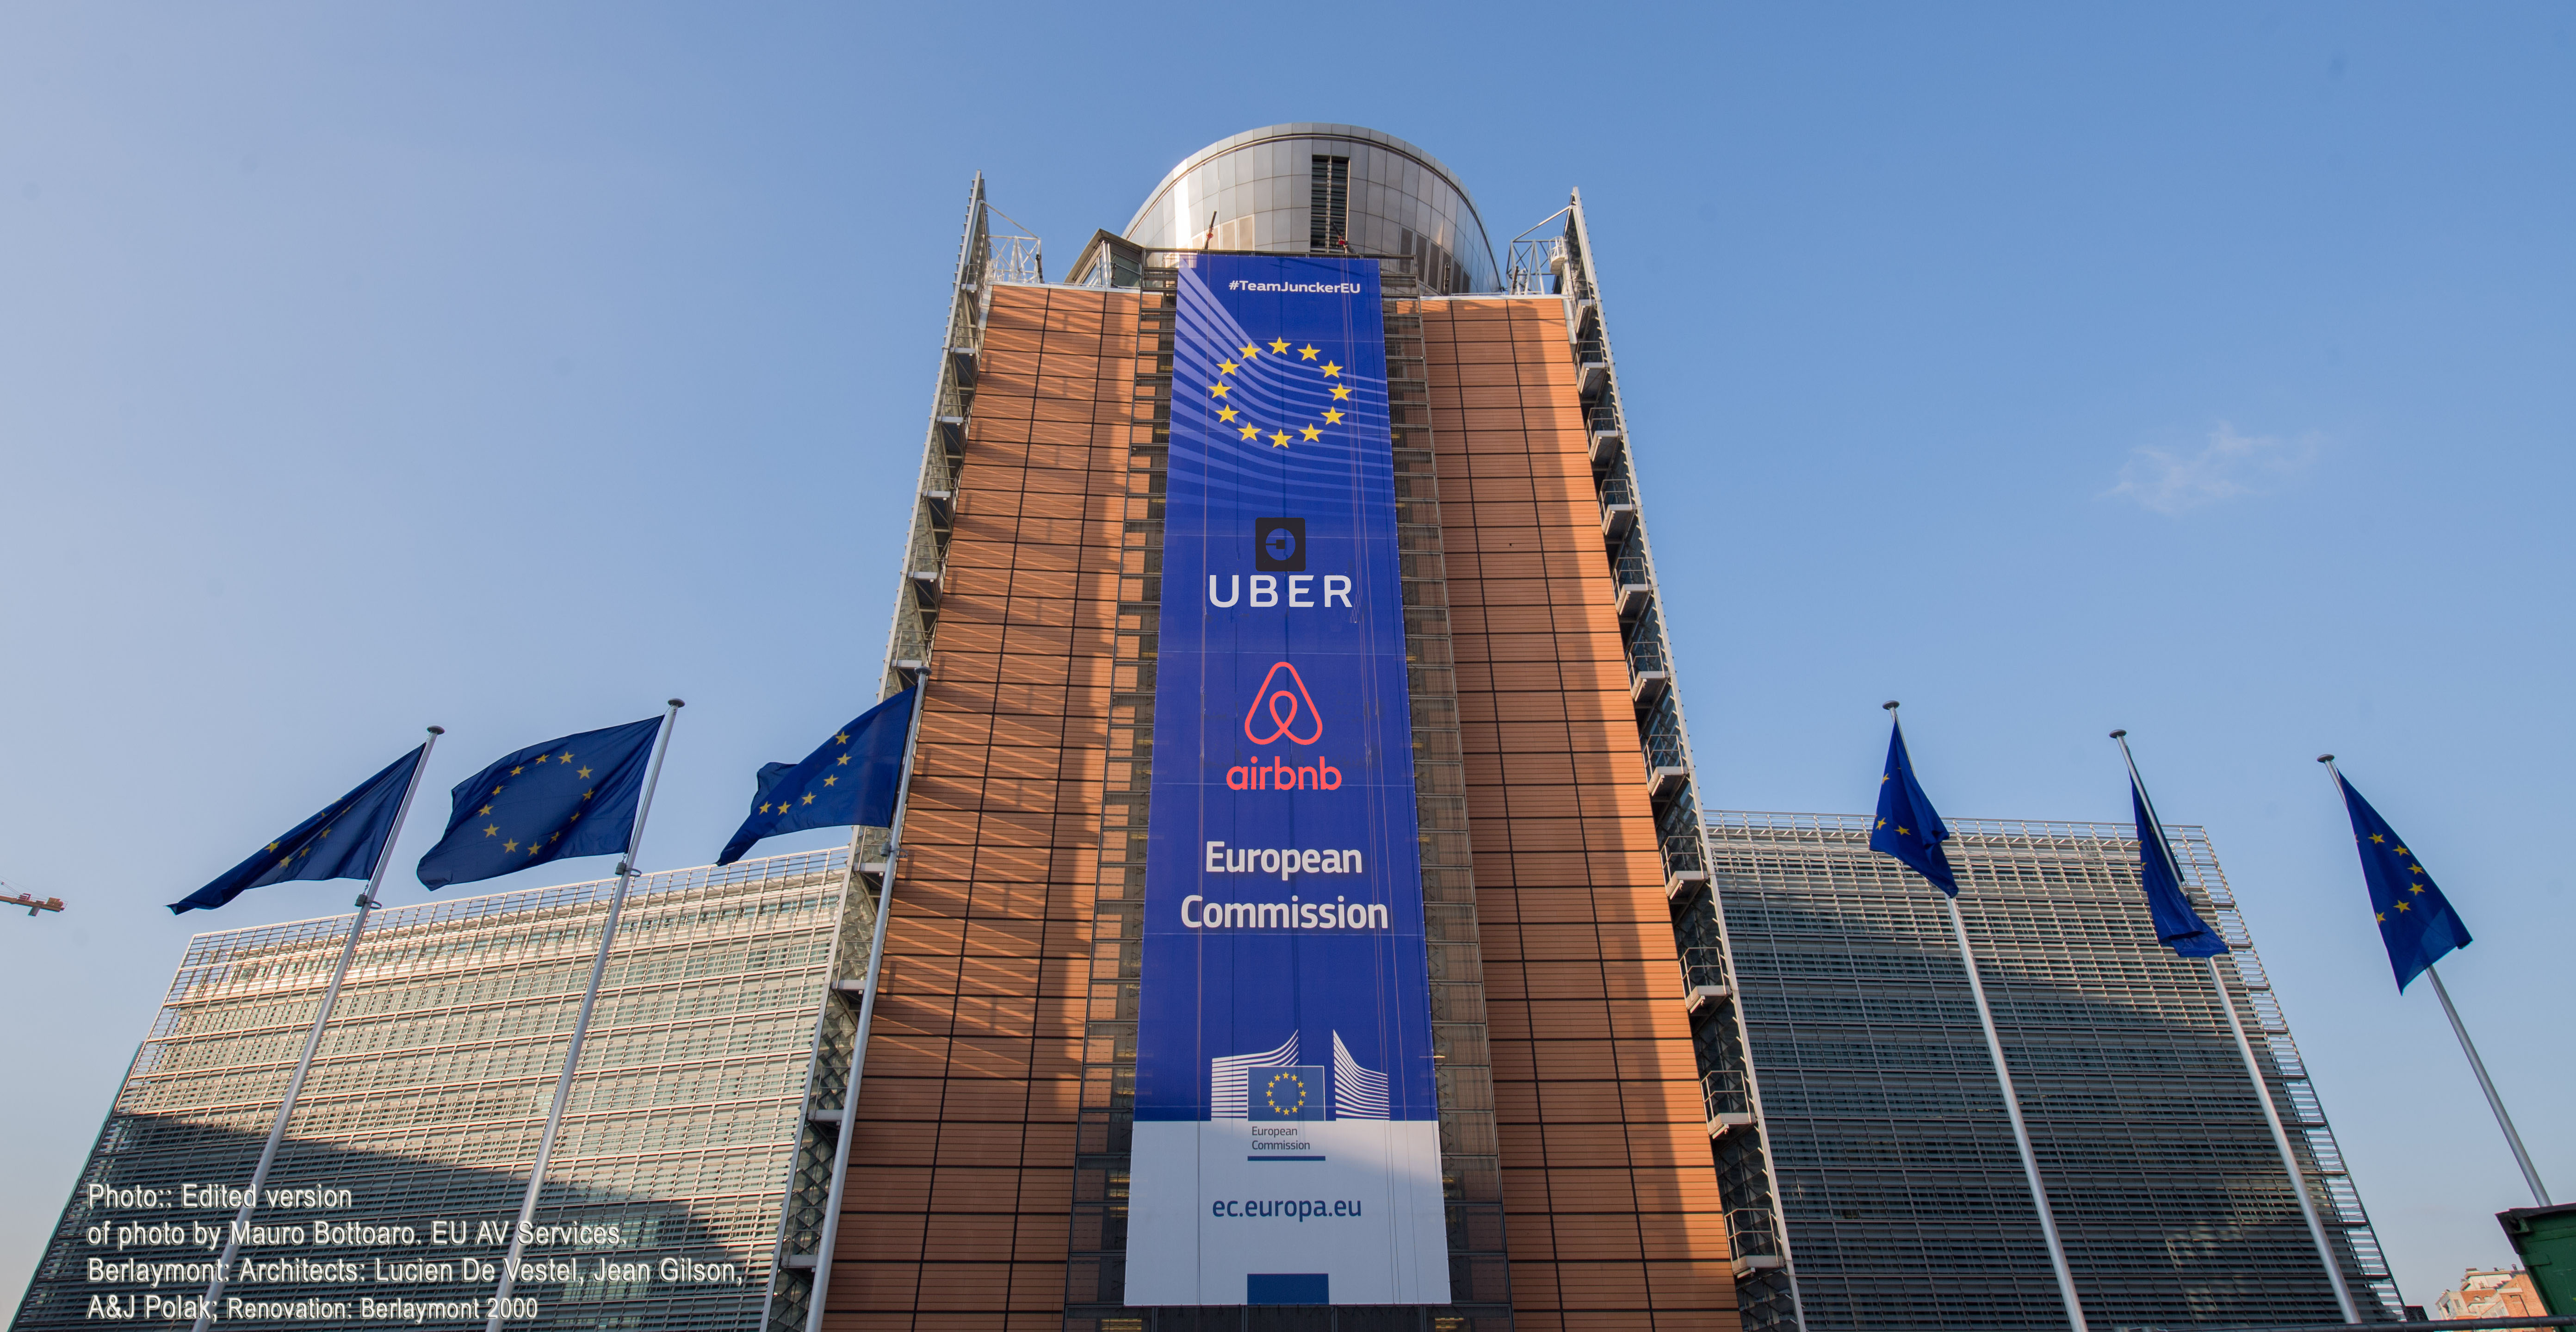 Uber, Airbnb and the European Commission